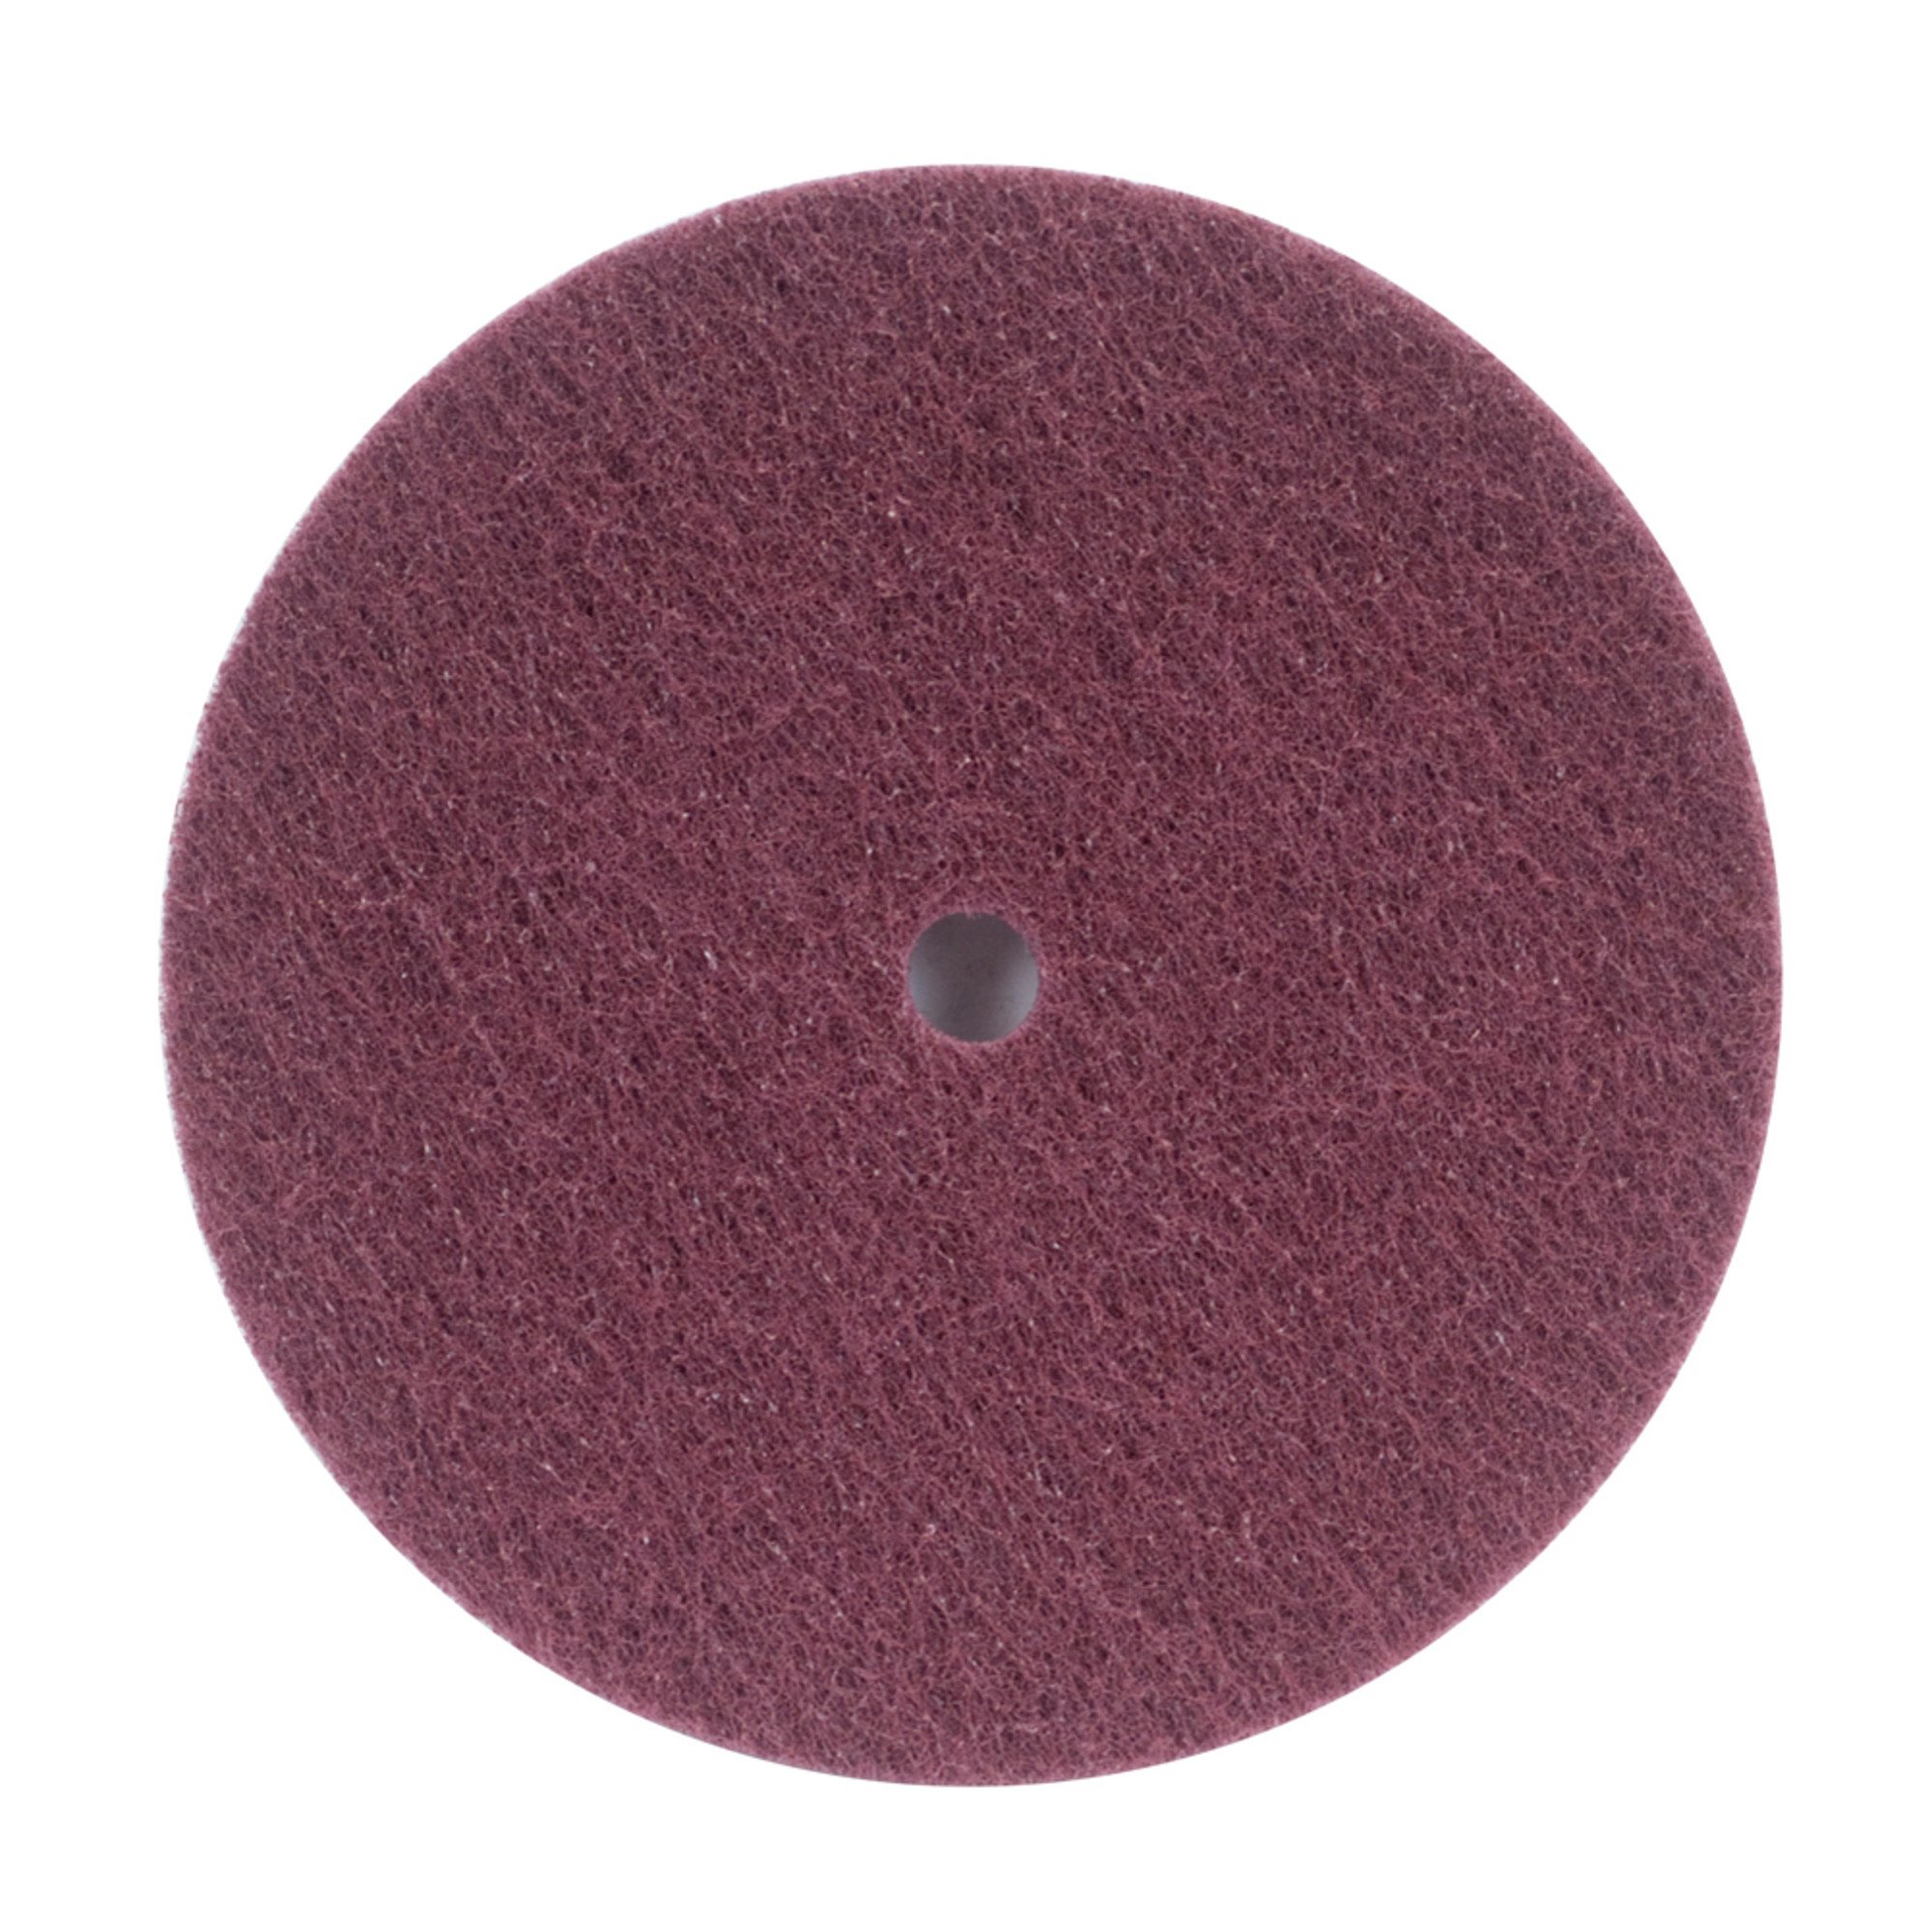 St Gobain-544 - A/O High Strength Buffing Discs 6, Sold As 1 Each